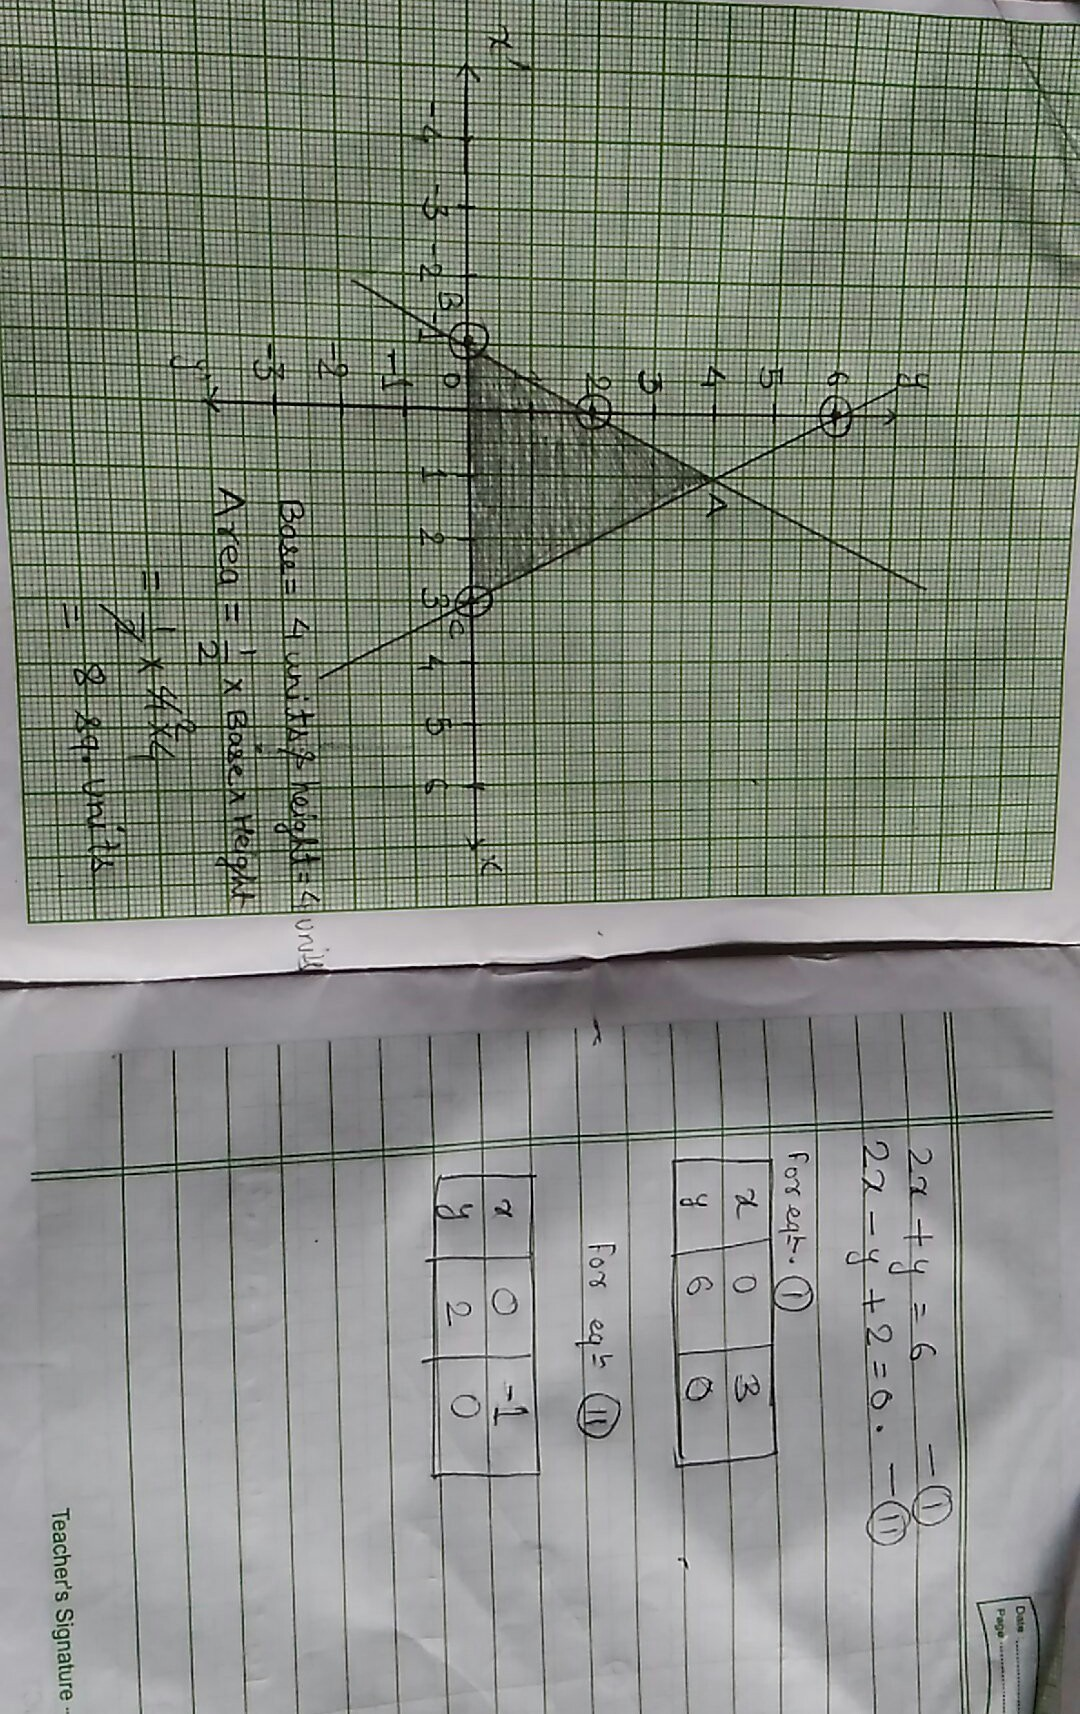 Draw The Graph Of 2x Y 6 And 2x Y 2 0 Shaded The Region Bounded By Thes Lines And X Axis Find